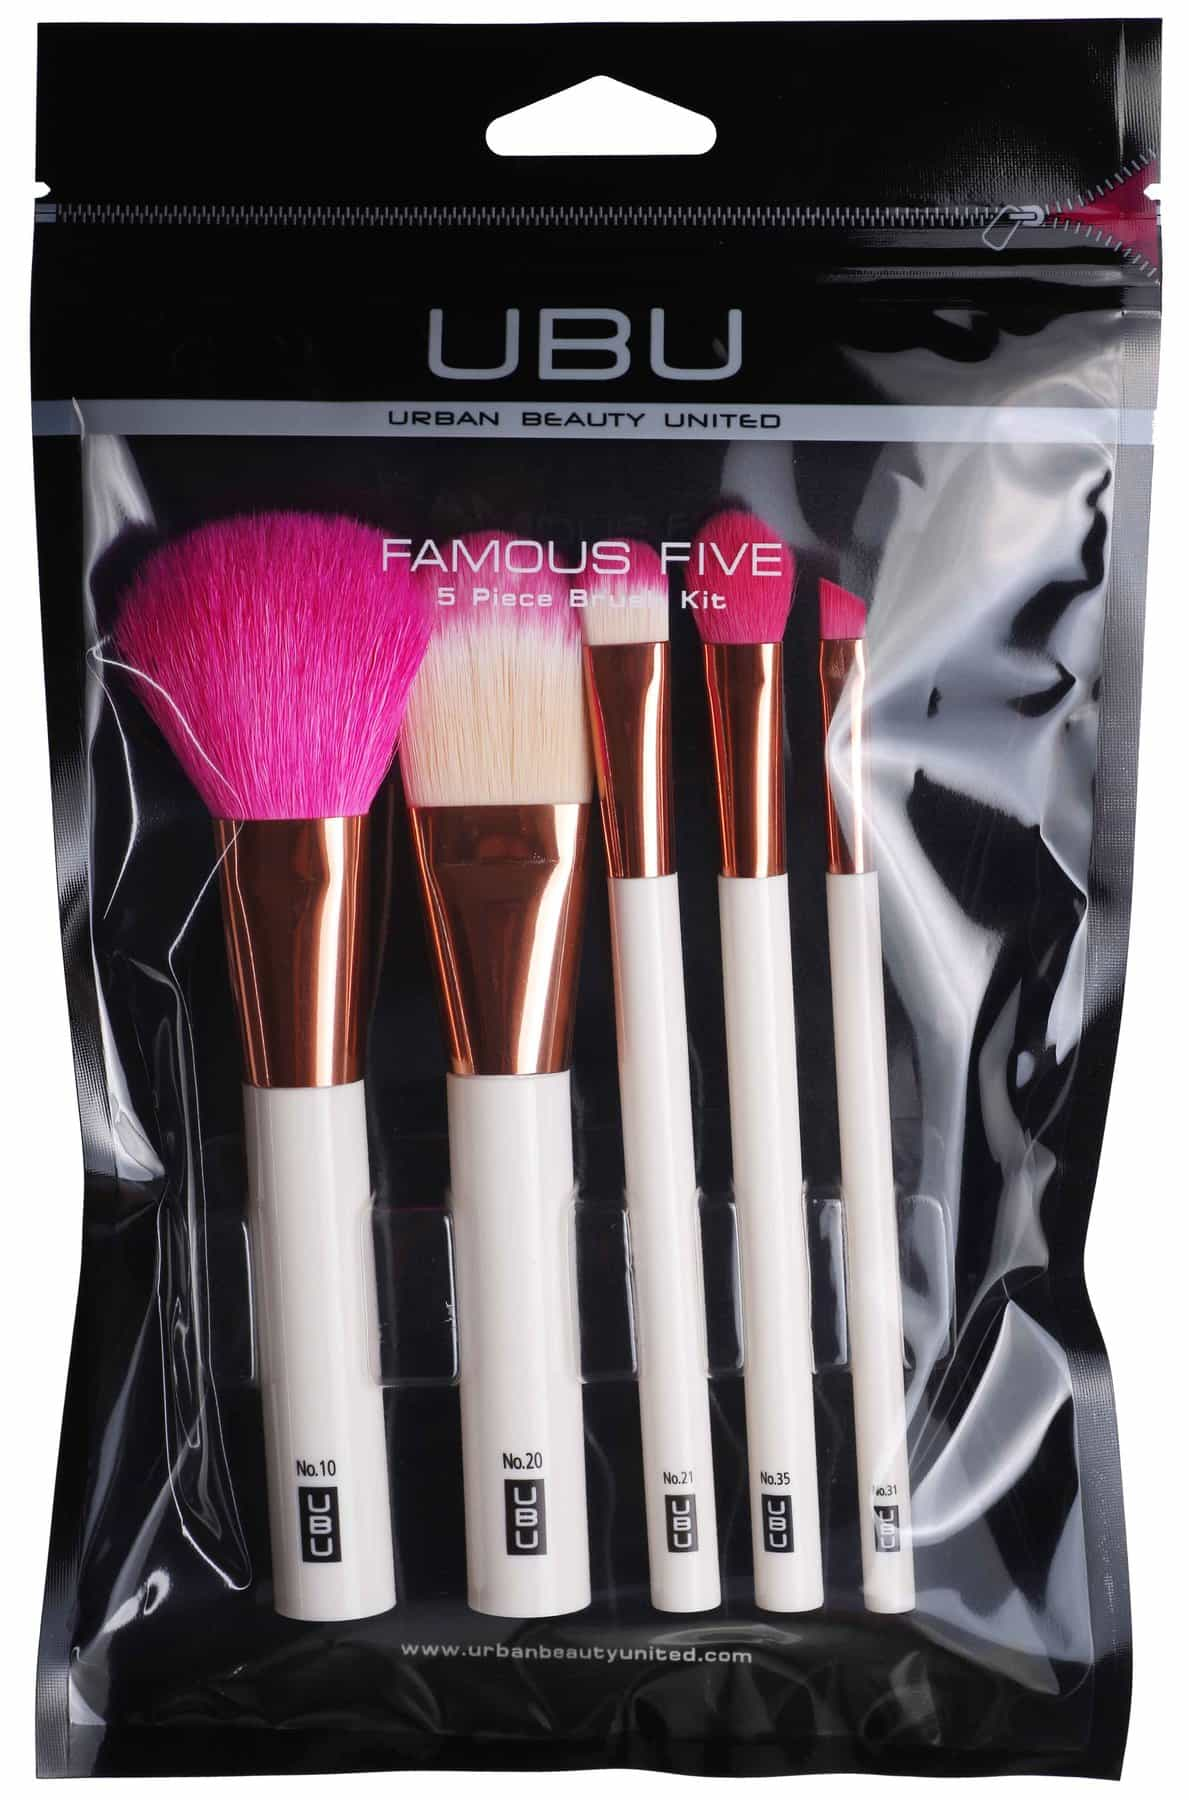 Ubu: pennelli makeup lowcost in vacanza